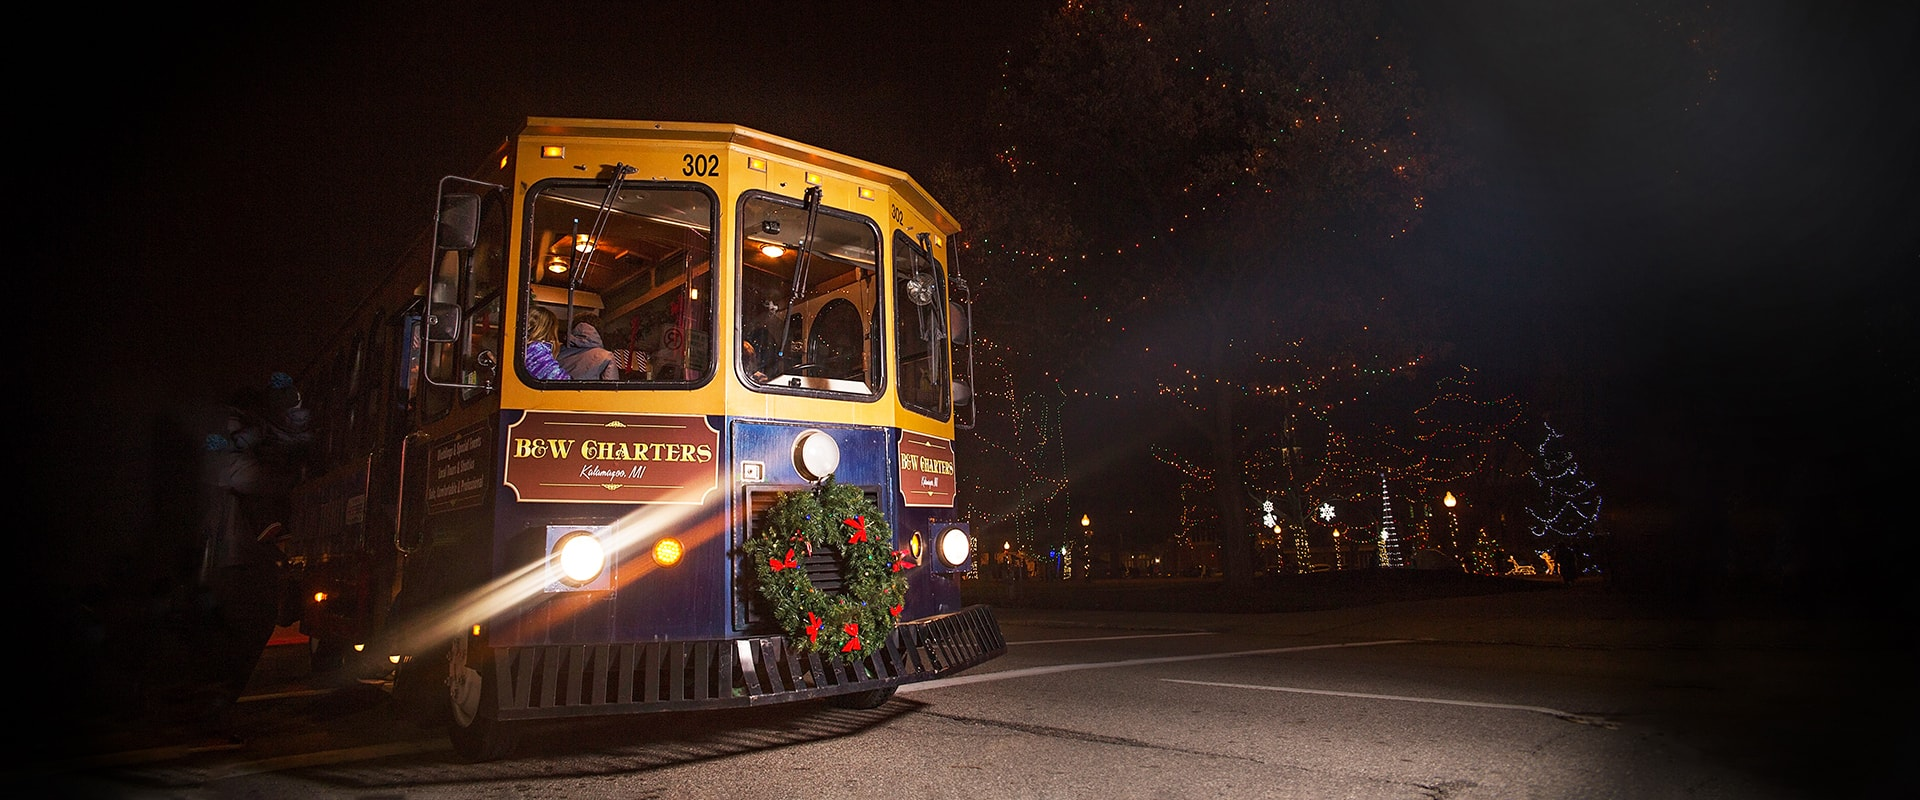 Downtown Kalamazoo Trolley